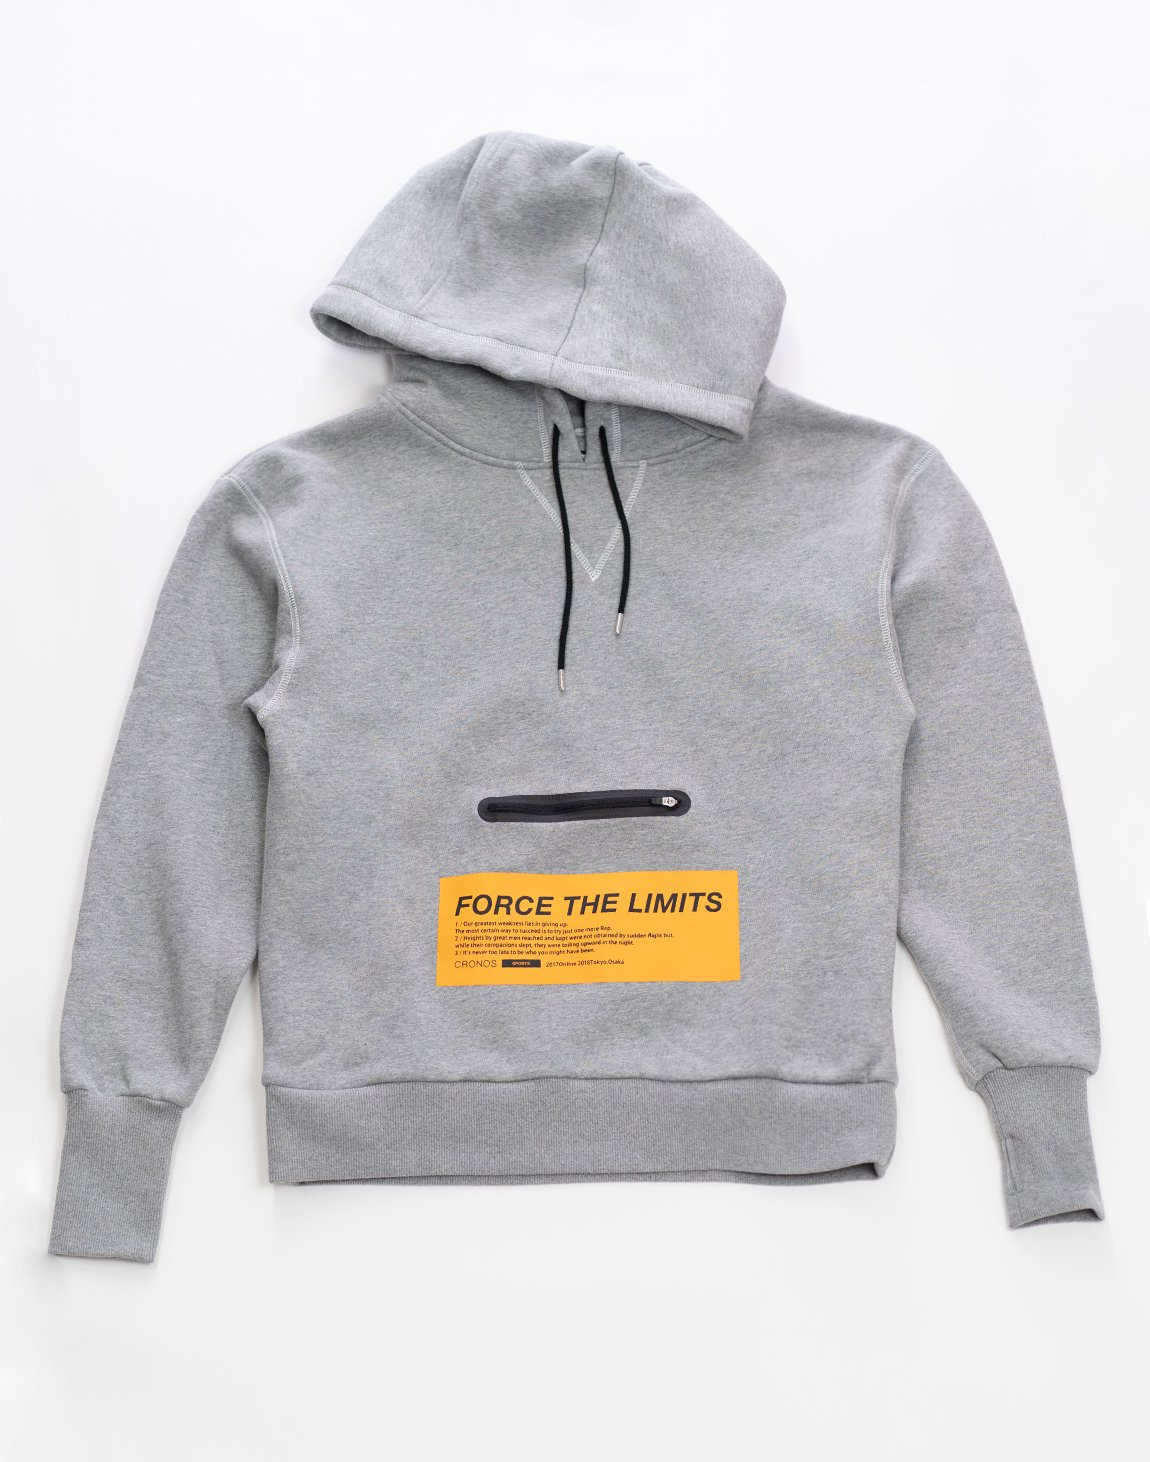 <img class='new_mark_img1' src='https://img.shop-pro.jp/img/new/icons1.gif' style='border:none;display:inline;margin:0px;padding:0px;width:auto;' />PK0015-SWEAT-PARKA-GRAY